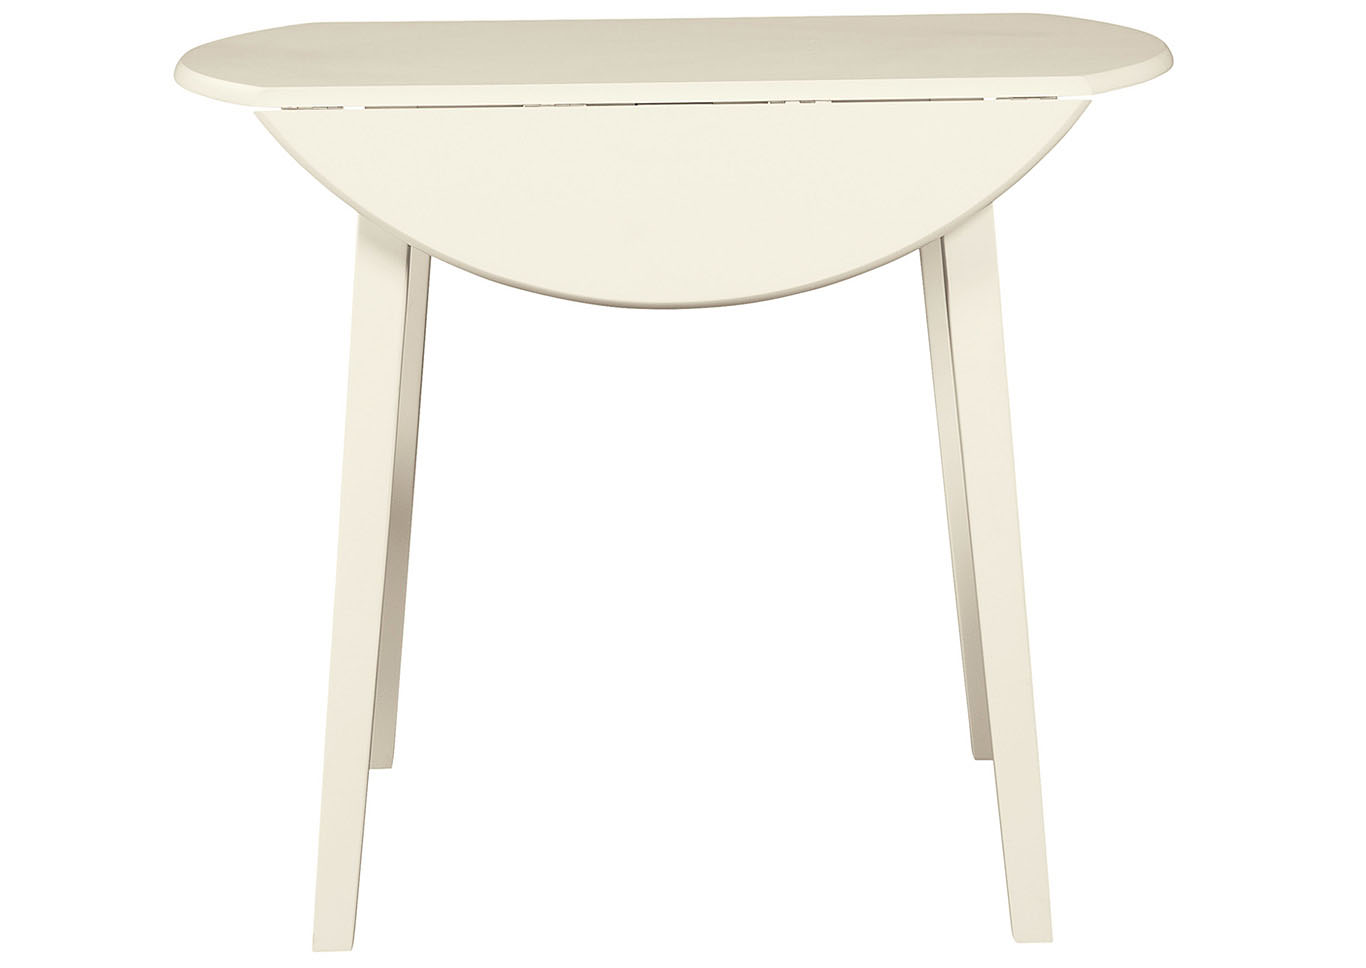 Slannery White Dining Table,Signature Design By Ashley